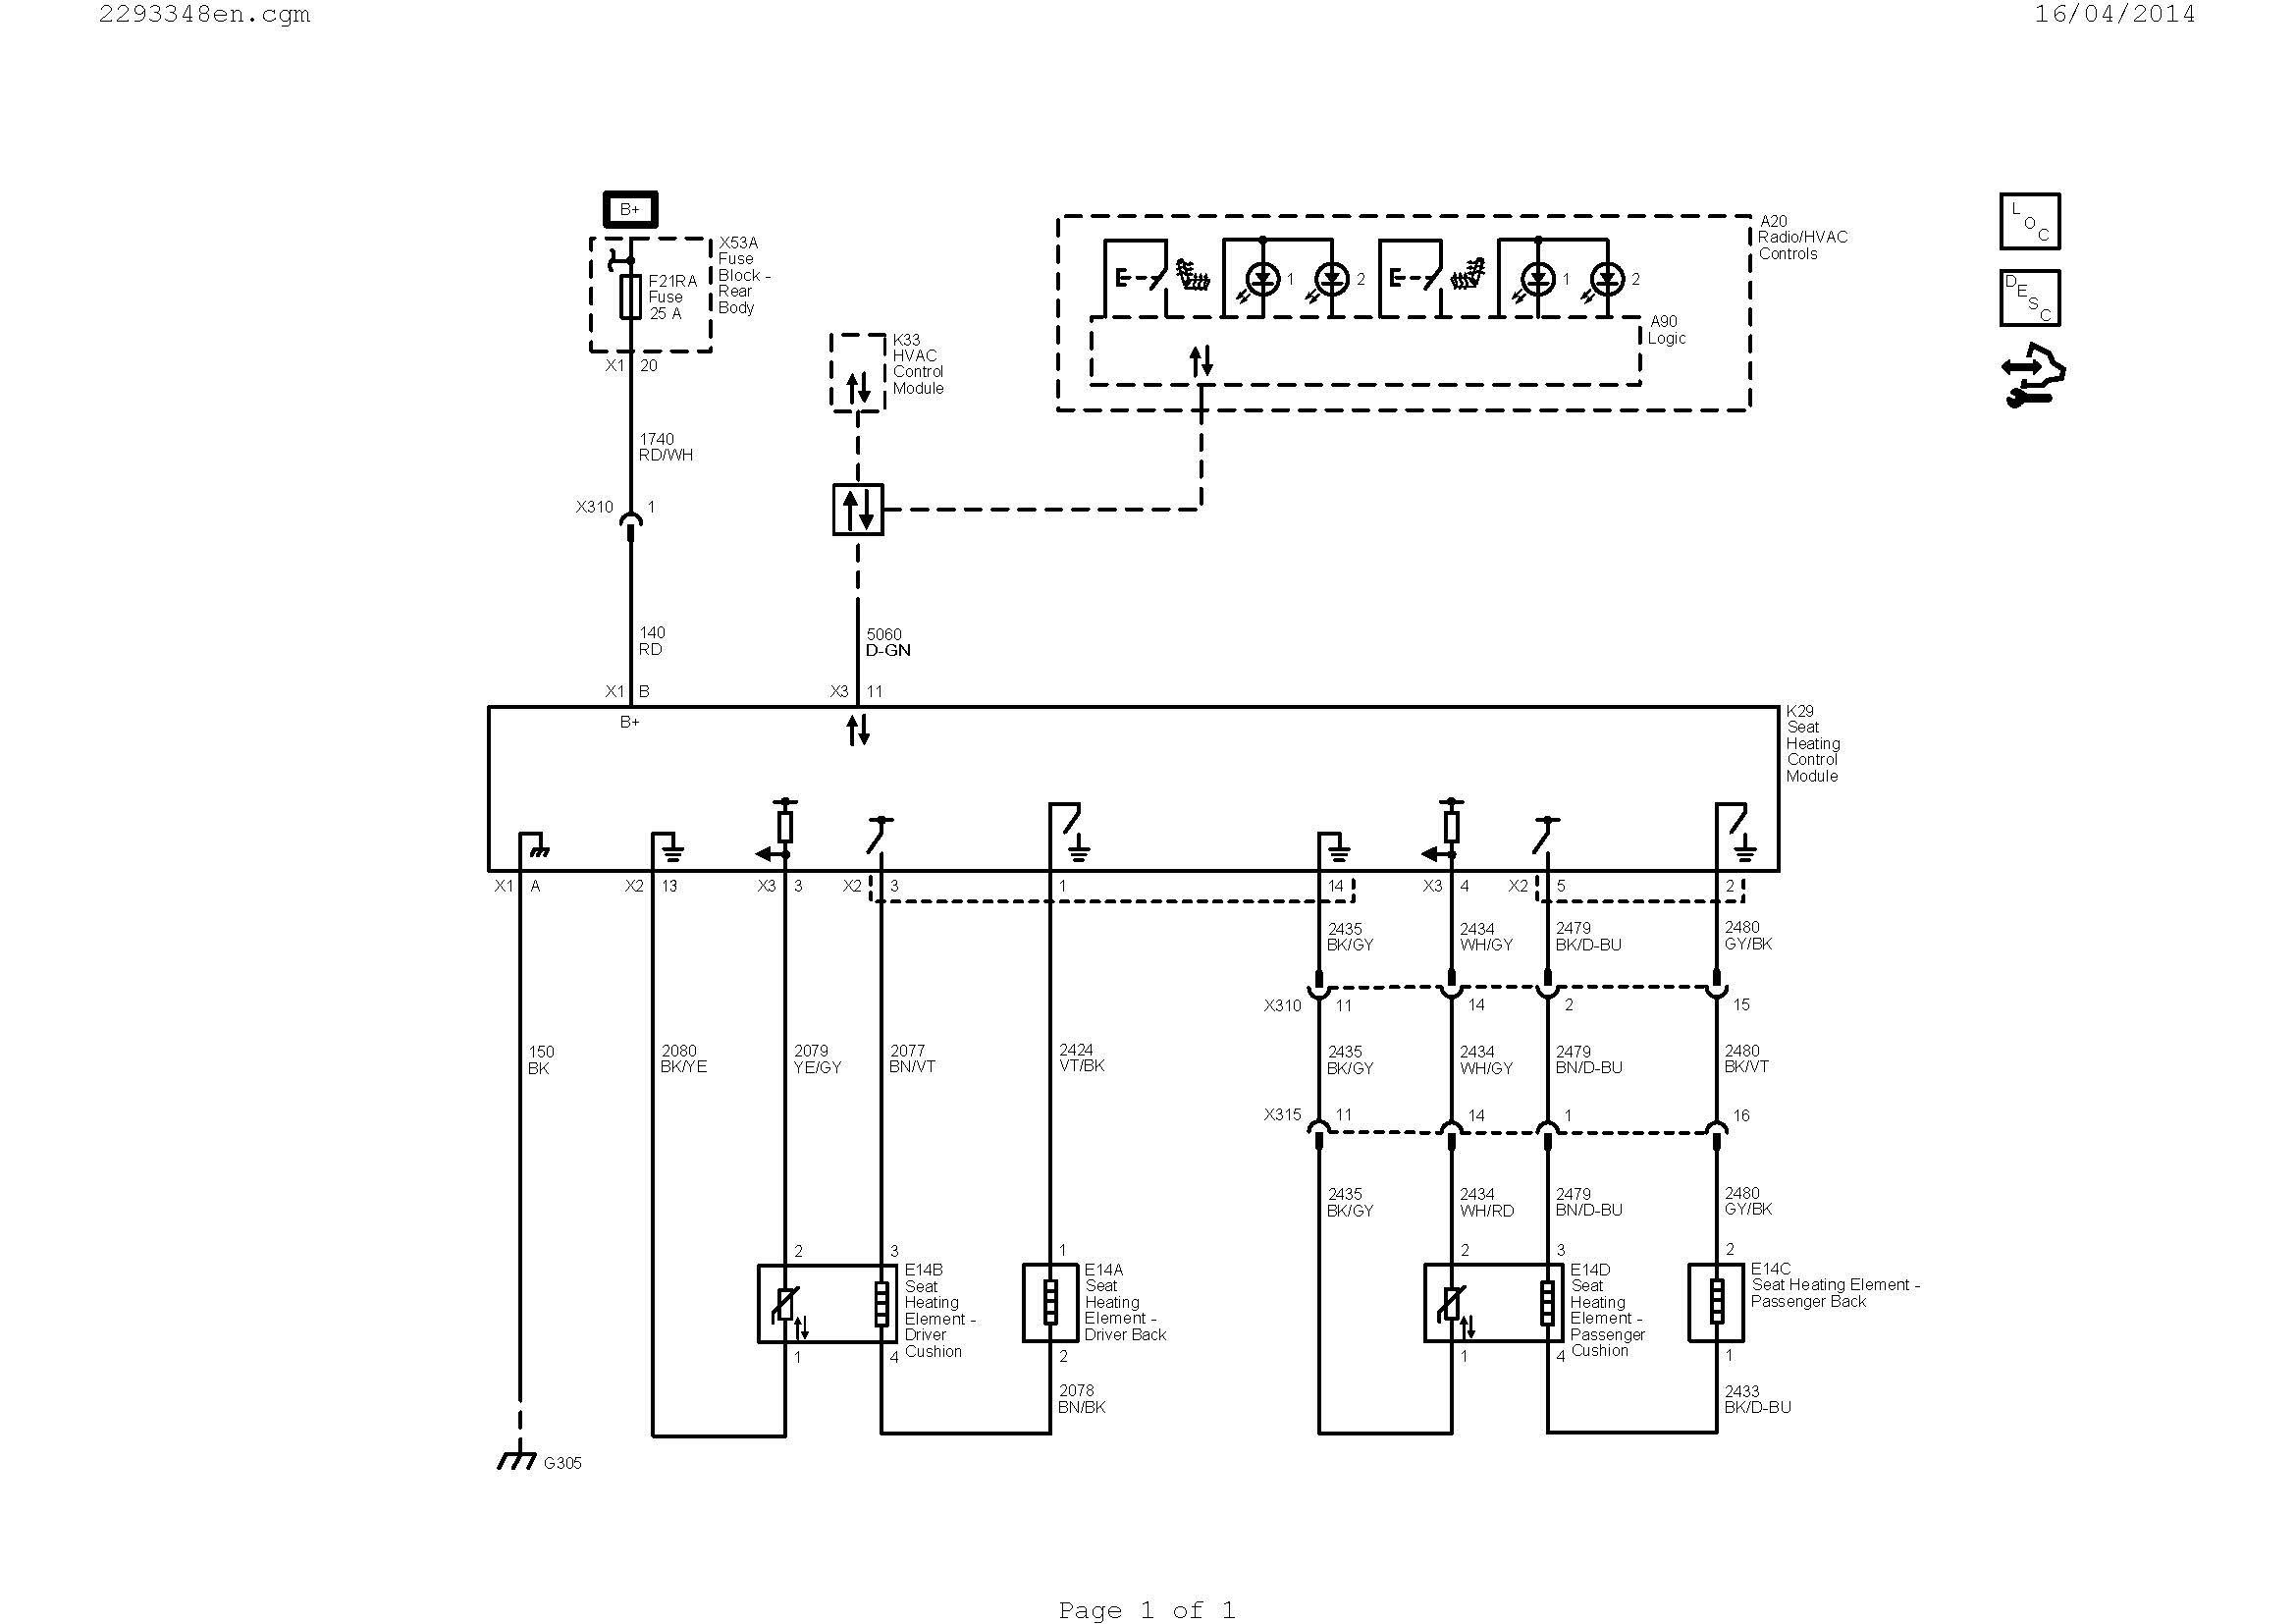 wiring diagram for outdoor thermostat Download-duo therm wiring diagram Download Wiring A Ac Thermostat Diagram New Wiring Diagram Ac Valid DOWNLOAD Wiring Diagram 12-a